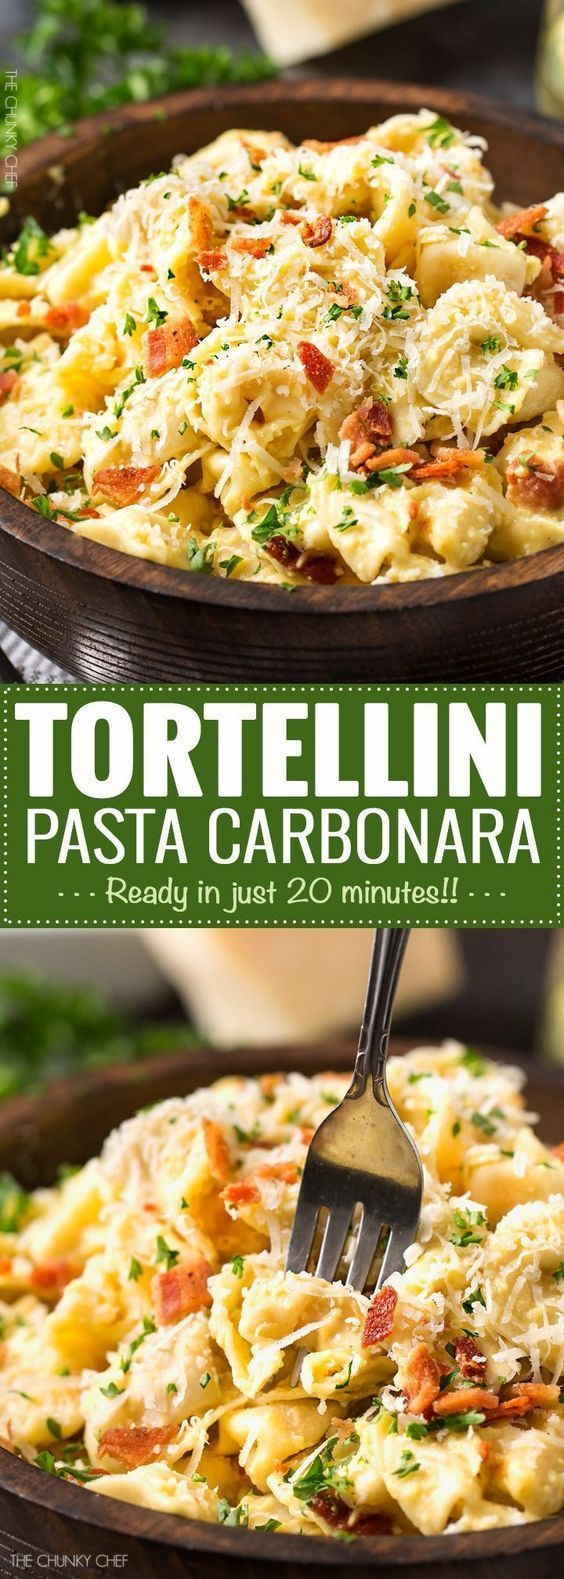 20 Minute Tortellini Pasta Carbonara | Cheese tortellini pasta is coated in a rich carbonara sauce, sprinkled with bacon and Parmesan cheese. It's the perfect weeknight dinner! | http://thechunkychef.com